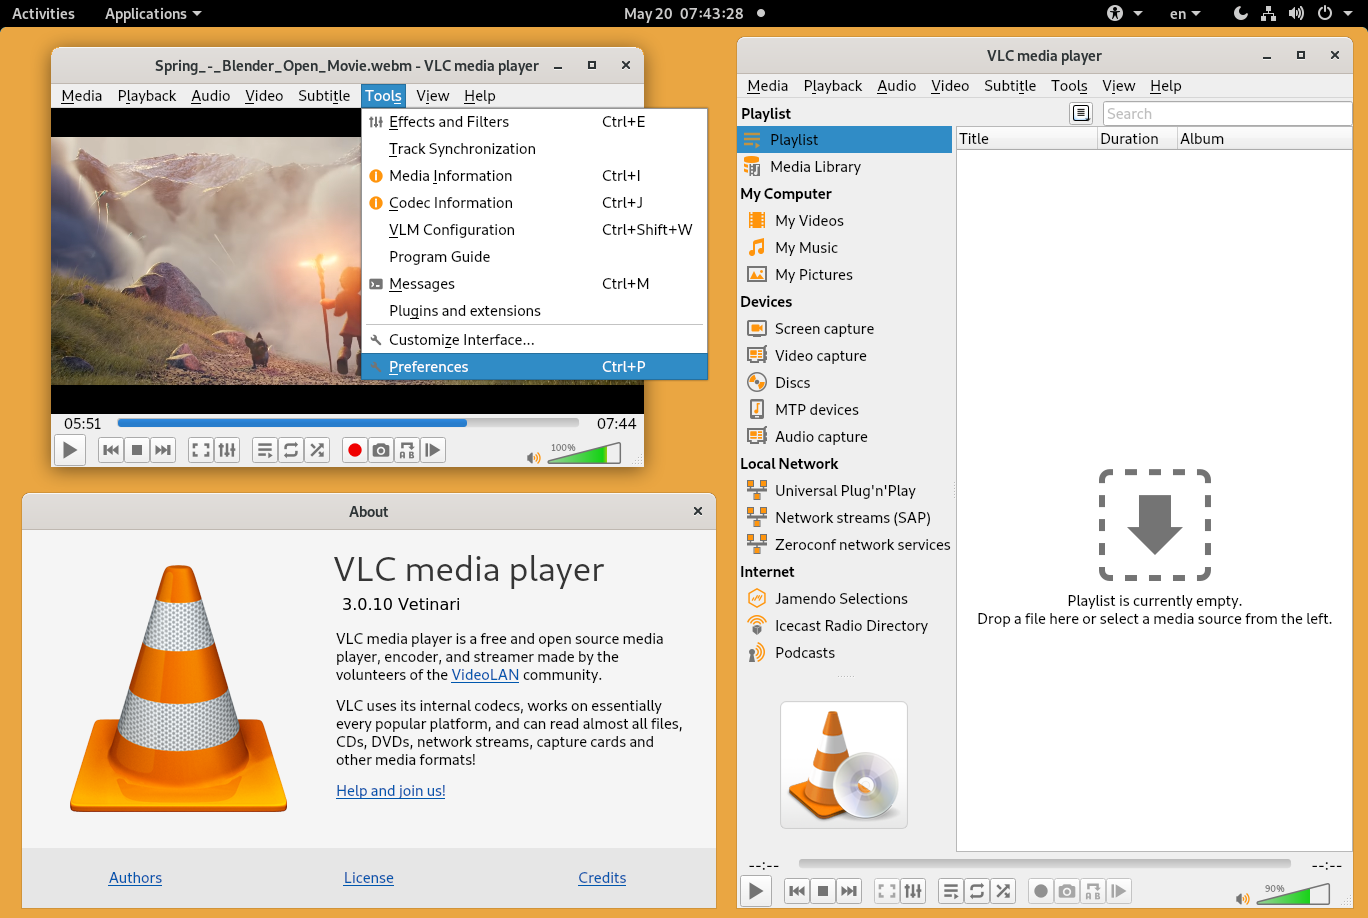 VLC media player - Wikipedia